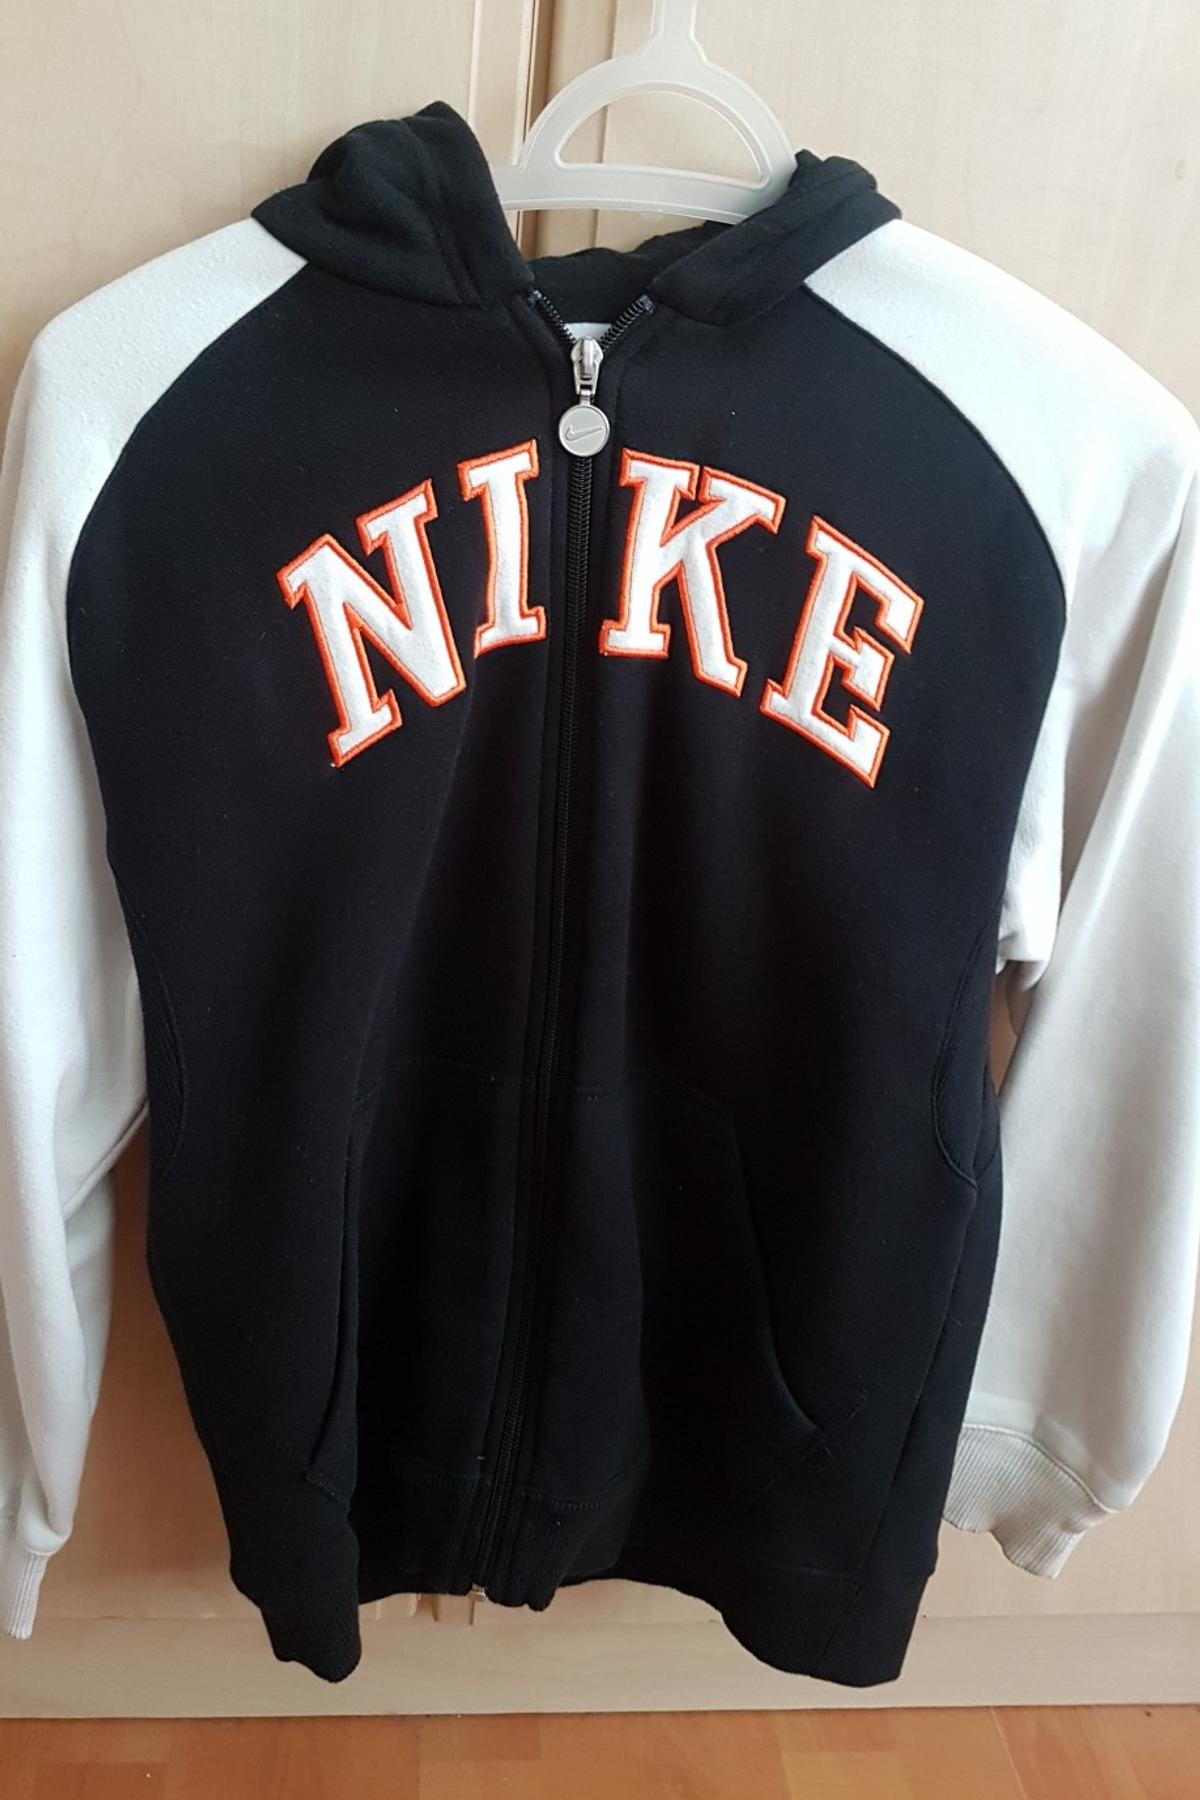 903bf12e1e4e Nike Hoodie age 12 in CR4 Merton for £5.00 for sale - Shpock